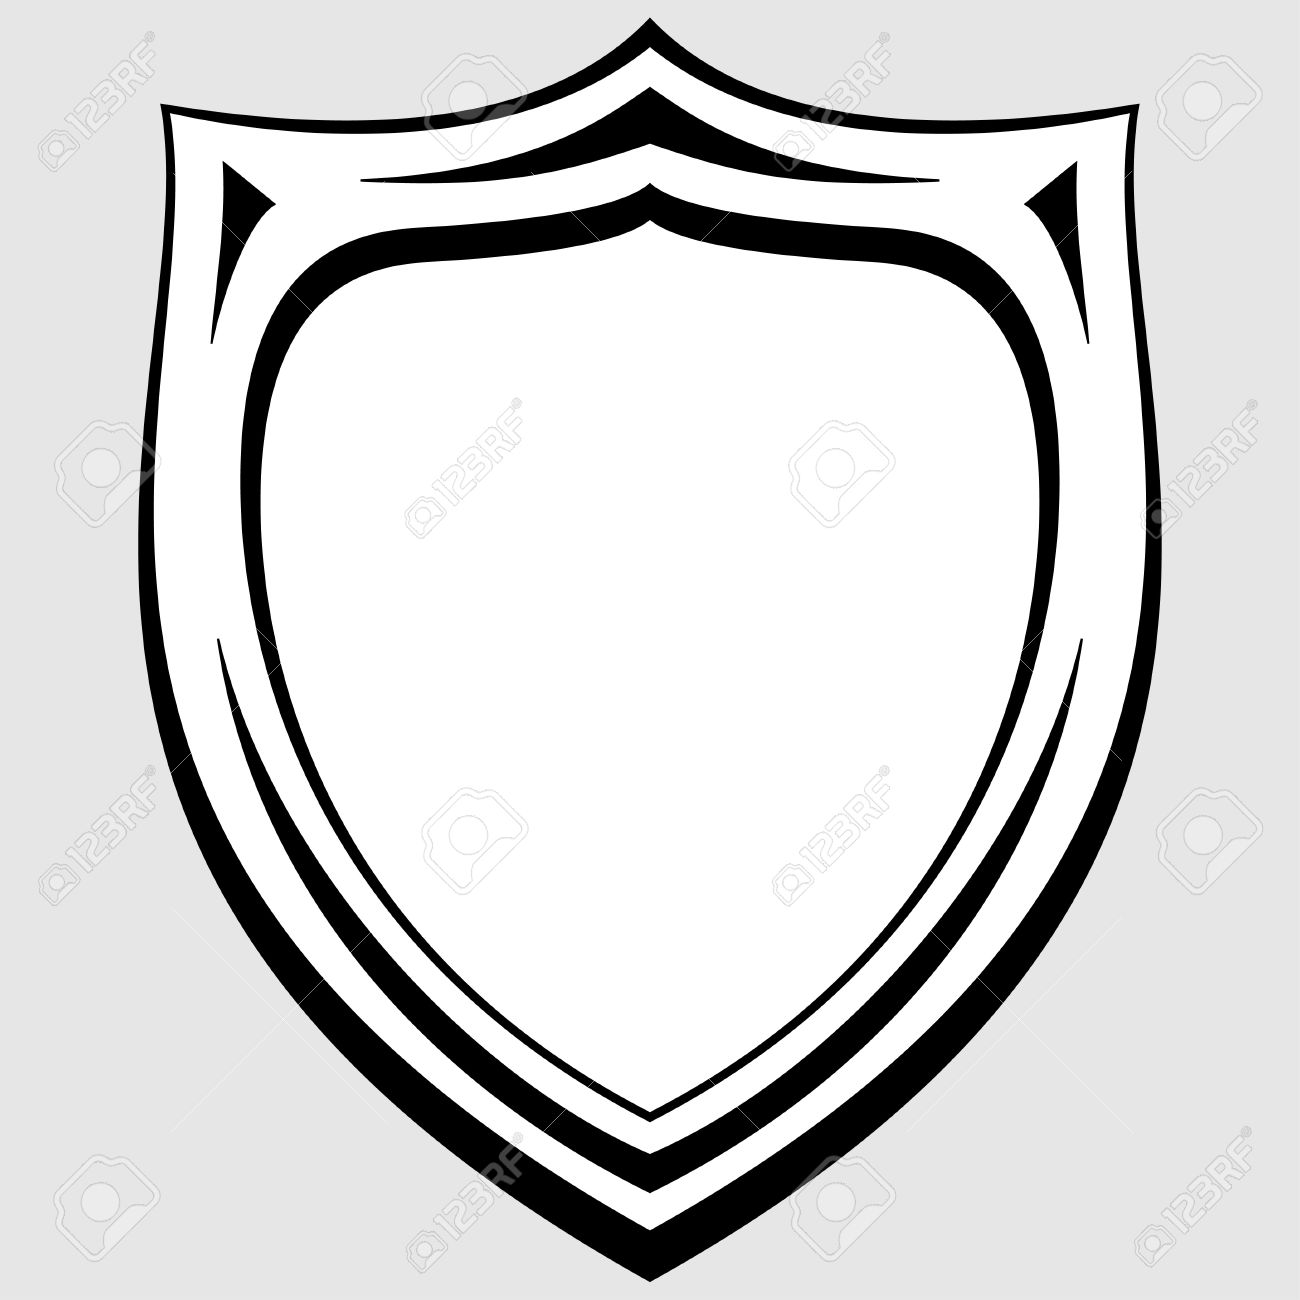 Police badge outline clipart png free Police Badge Outline white shield outline clipart white outline ... png free